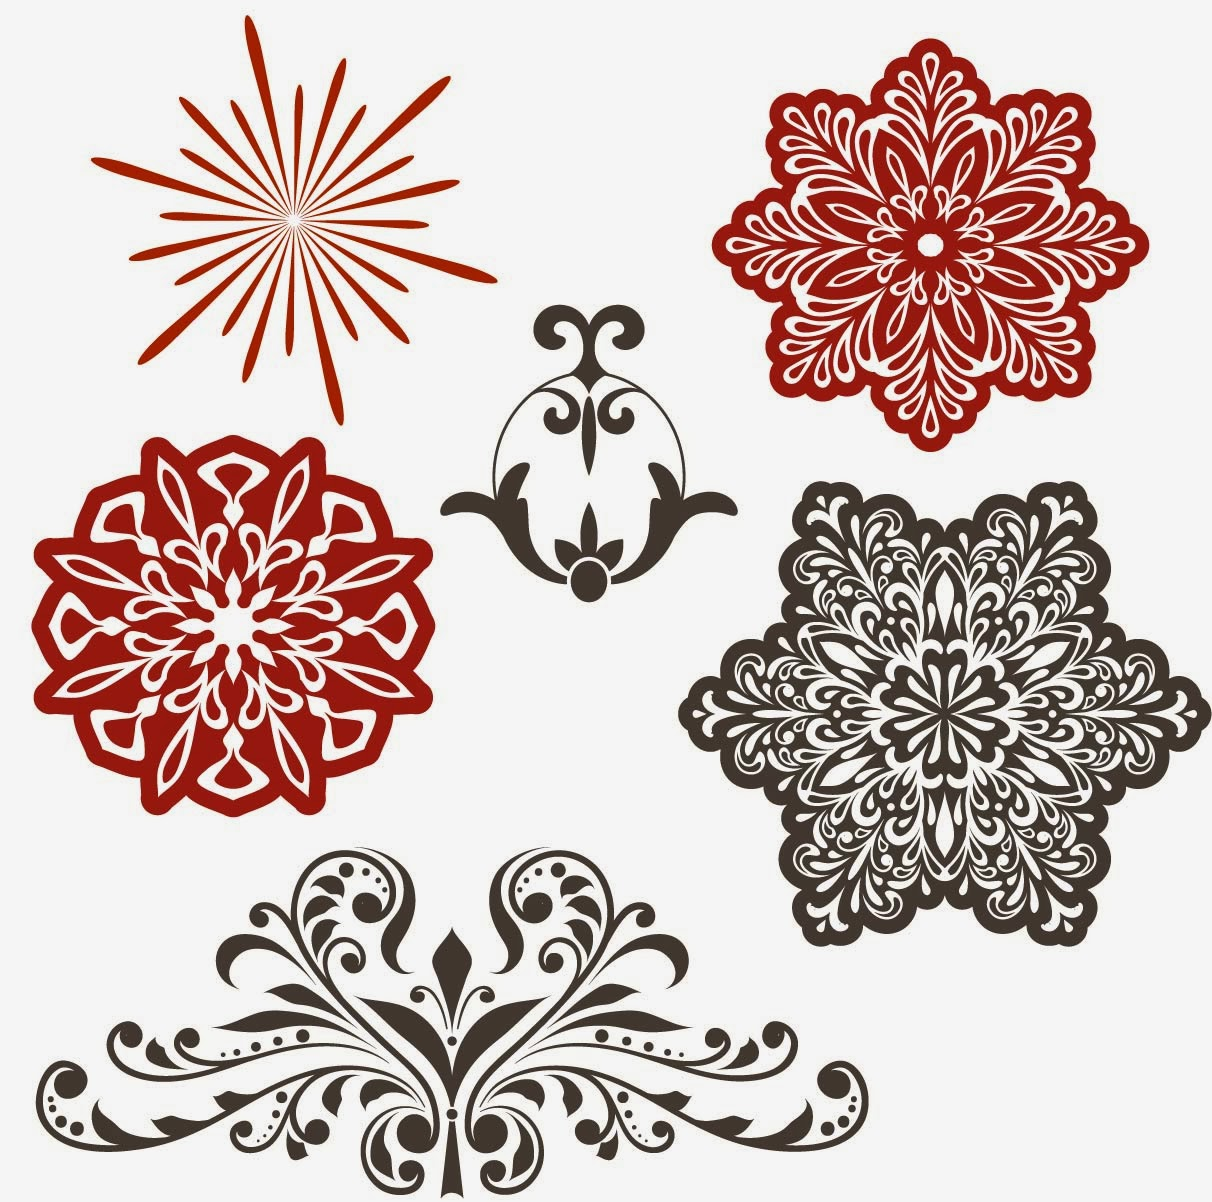 Free Christmas Decorative Designs Elements Vector Clip Art Download